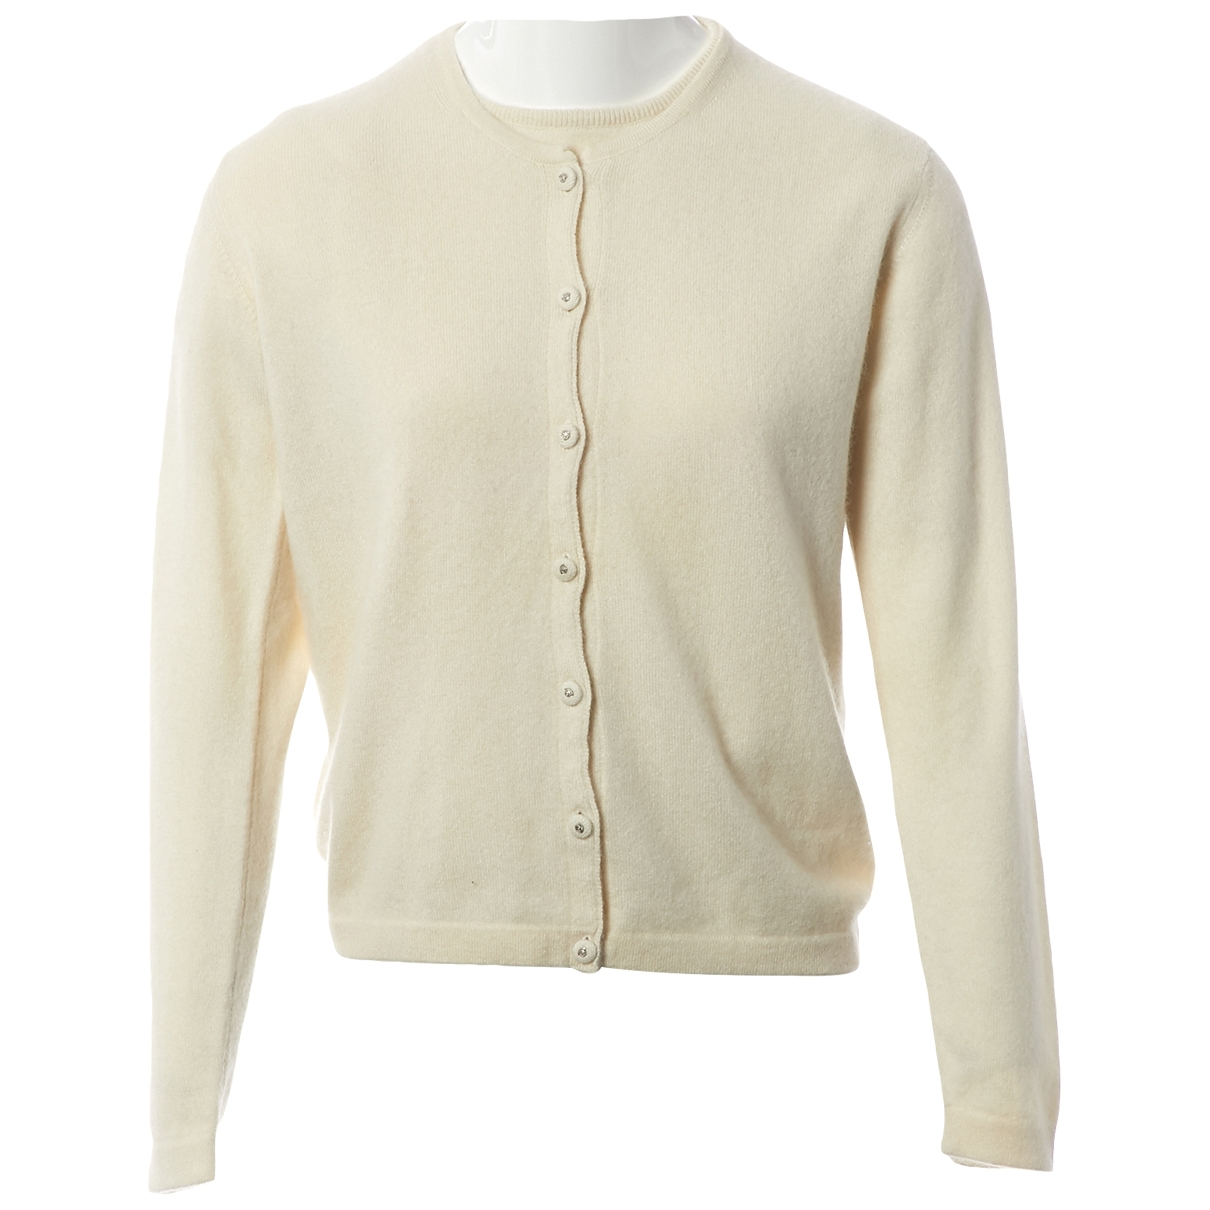 Versace \N Ecru Cashmere Knitwear for Women 40 IT